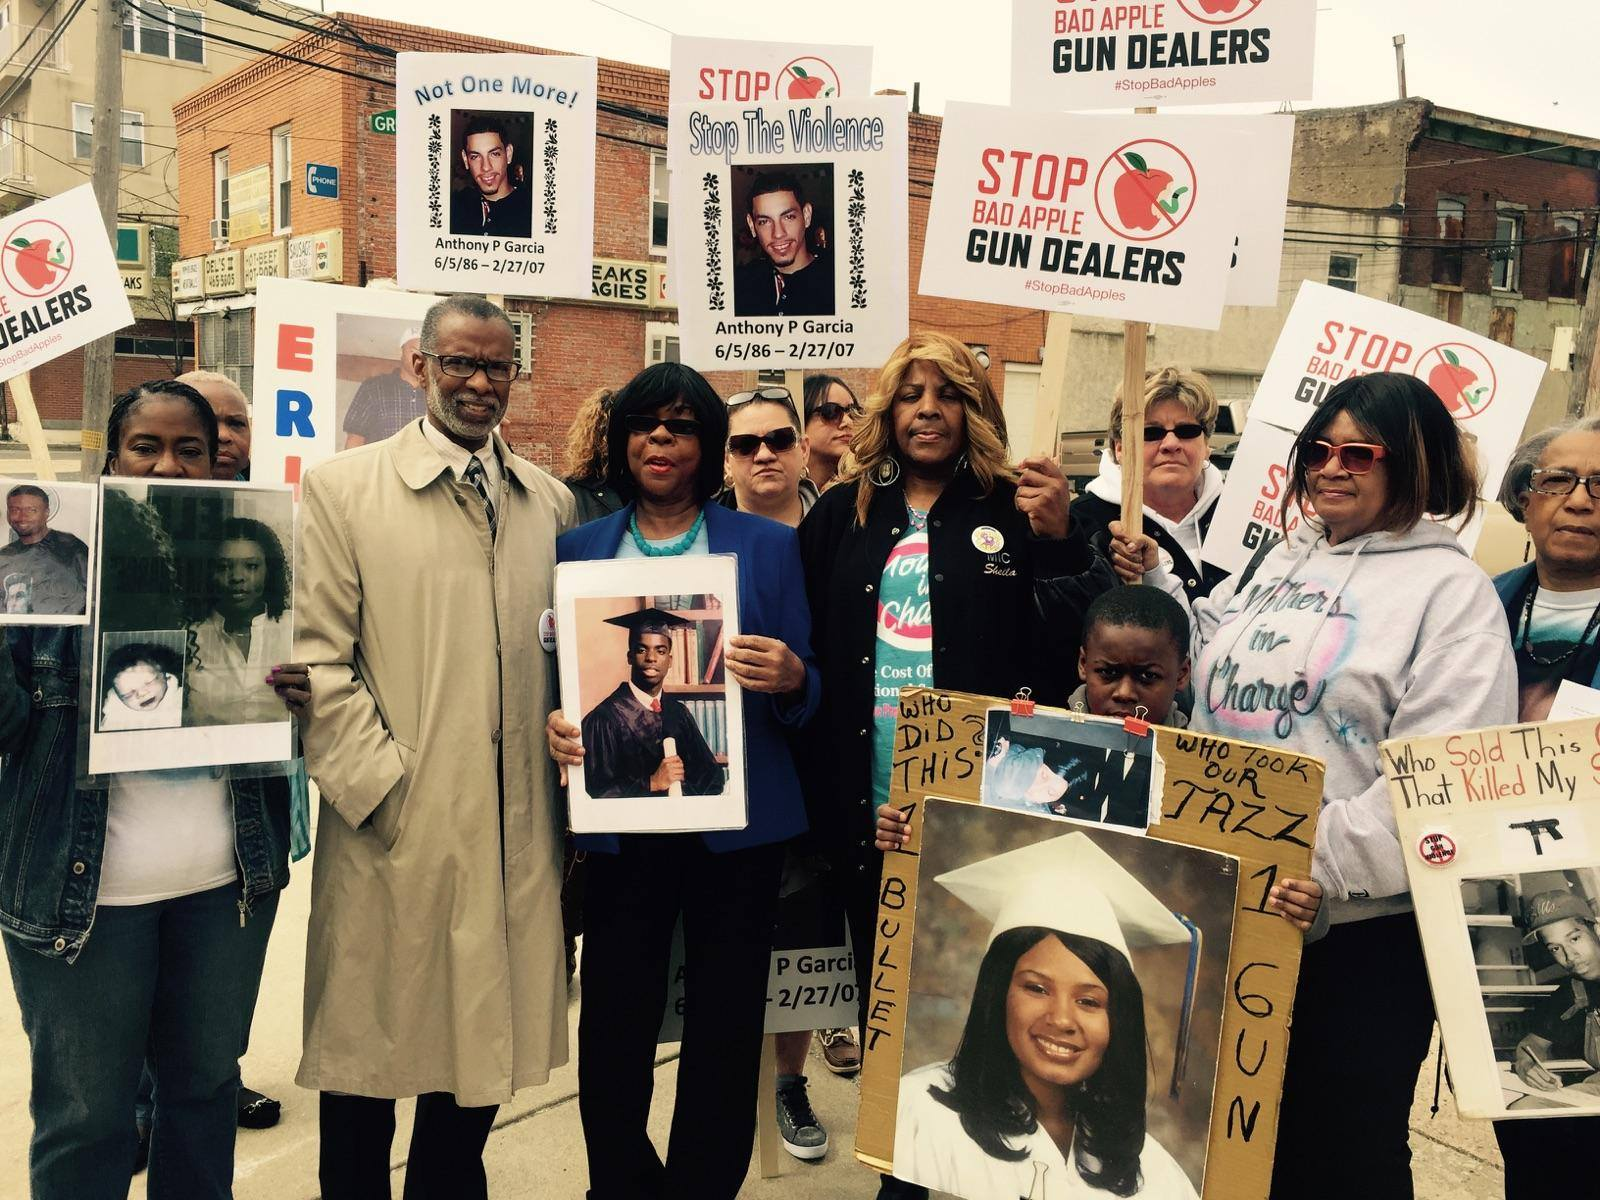 April 25, 2015: Joining the Brady Campaign and Mothers in Charge to Protest Bad Apple Gun Dealers